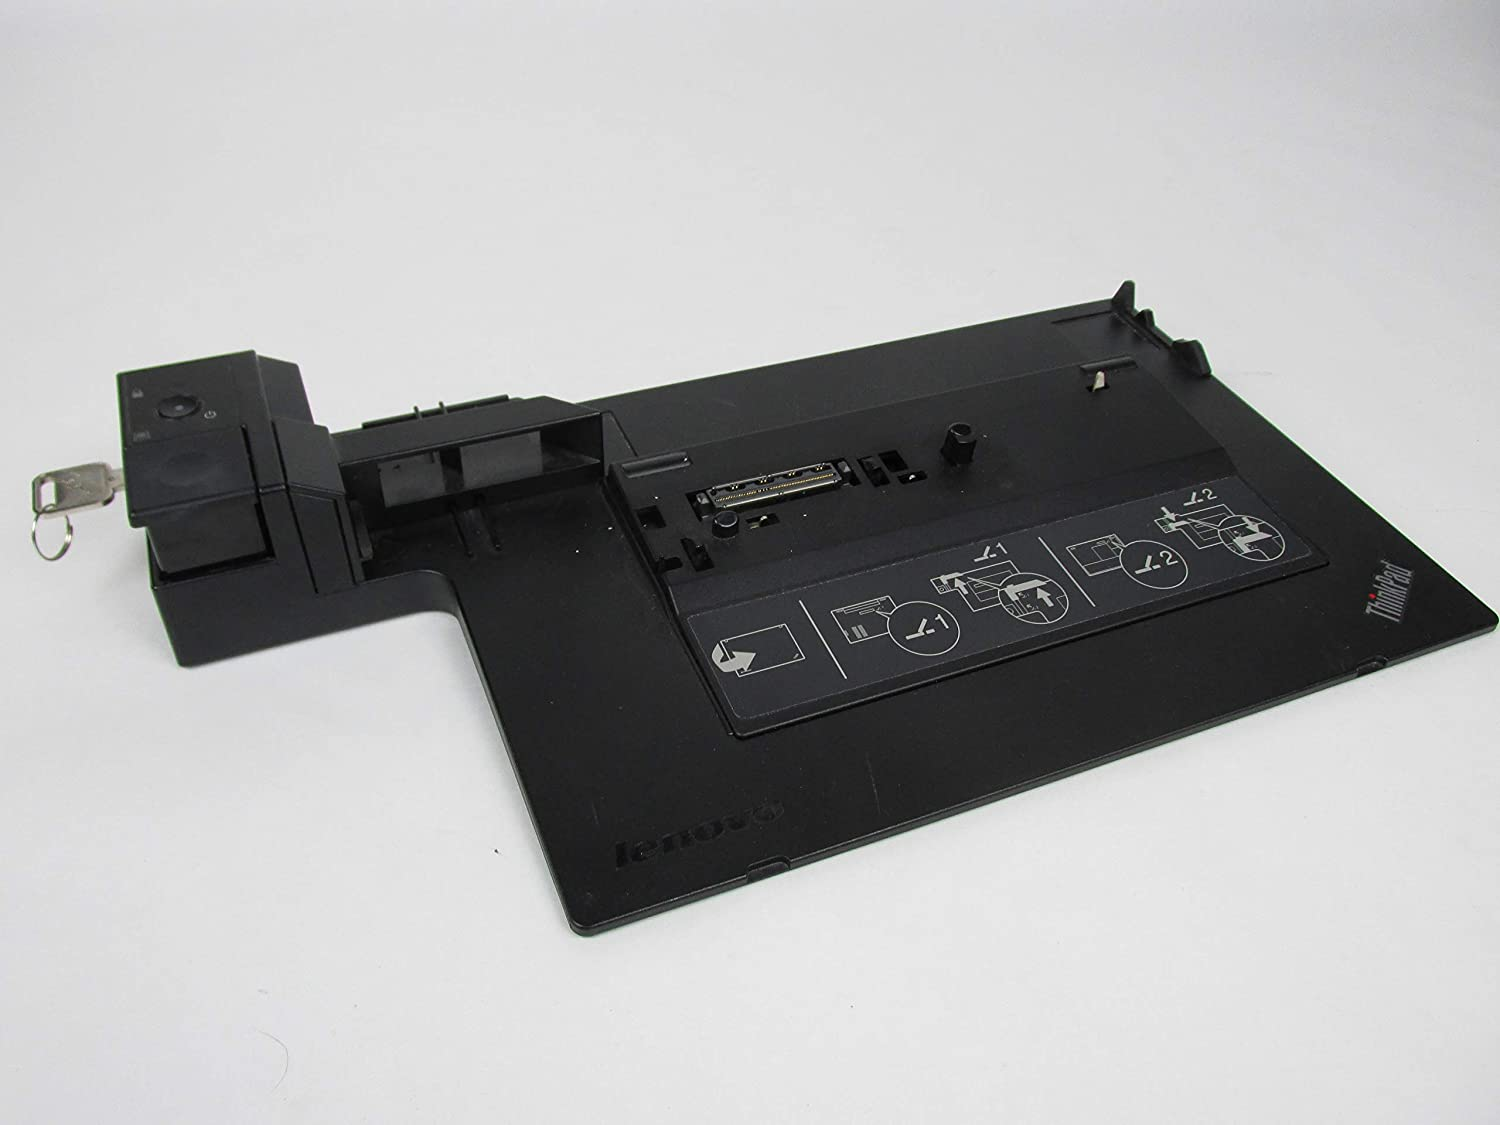 IBM Lenovo ThinkPad Mini Dock Series 3 4337 433710U Docking Station L412, L512, L420, L520 T400s, T410, T410i, T410s, T410si, T420, T420s, T510, T510i T520 X220 With KEY